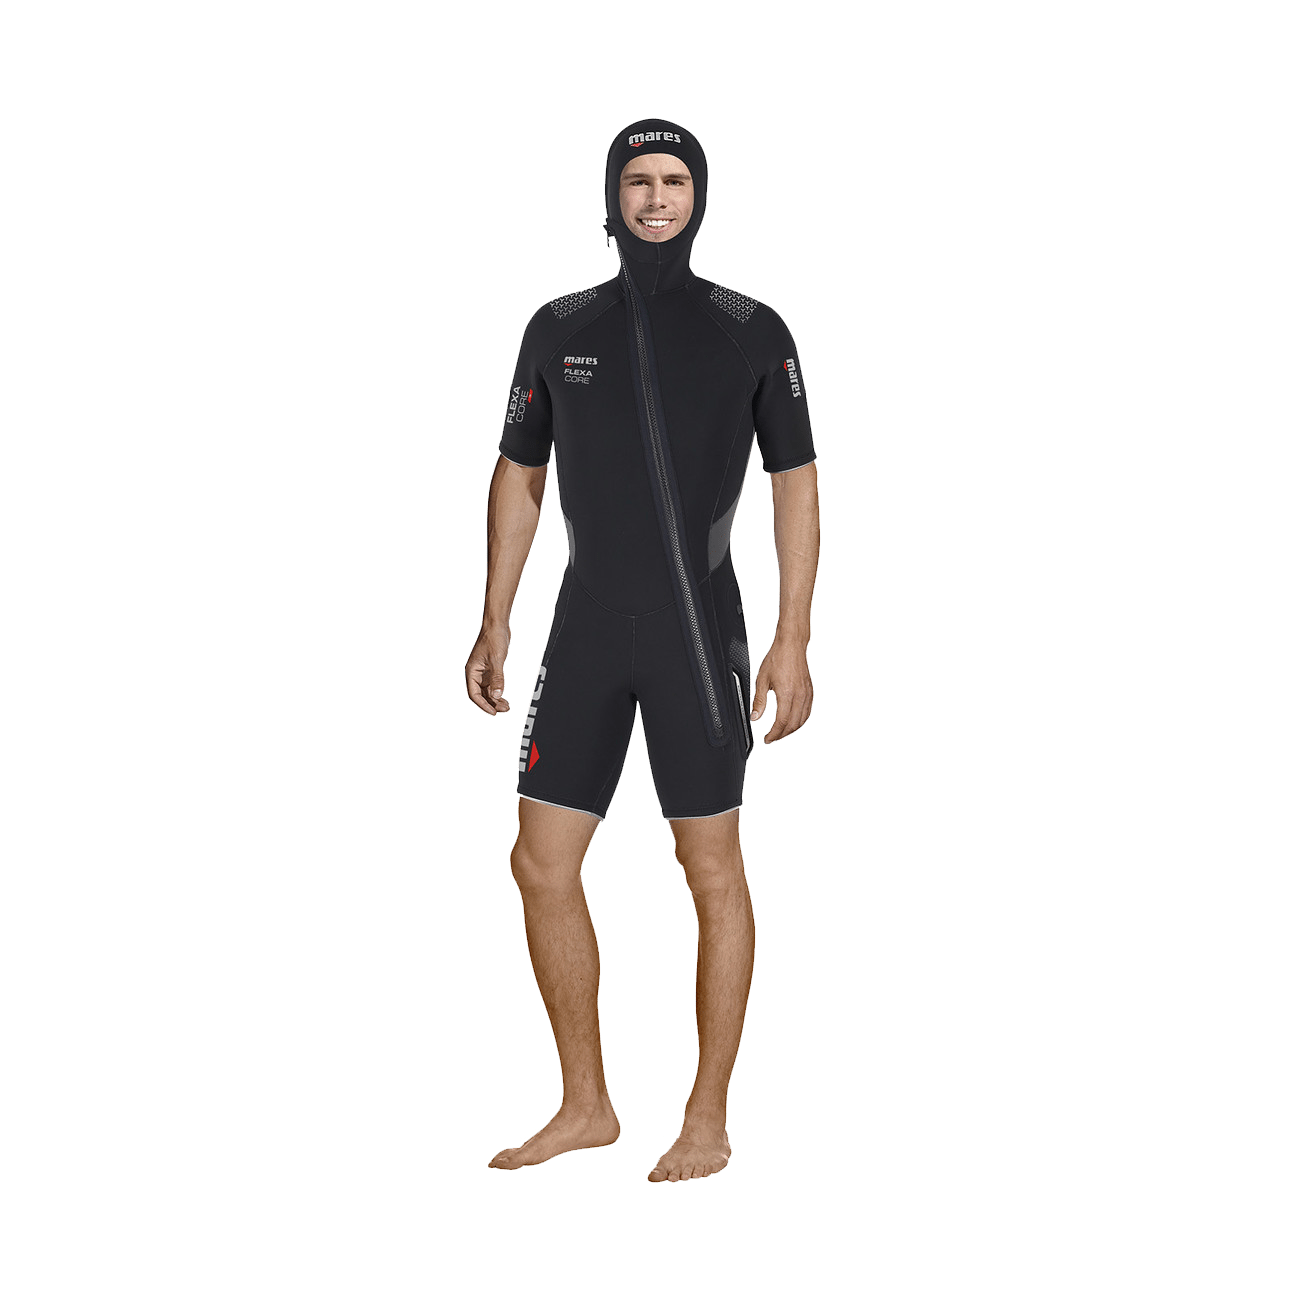 Mares Flexa Core Wetsuit | Mares Wetsuits | Mares Singapore